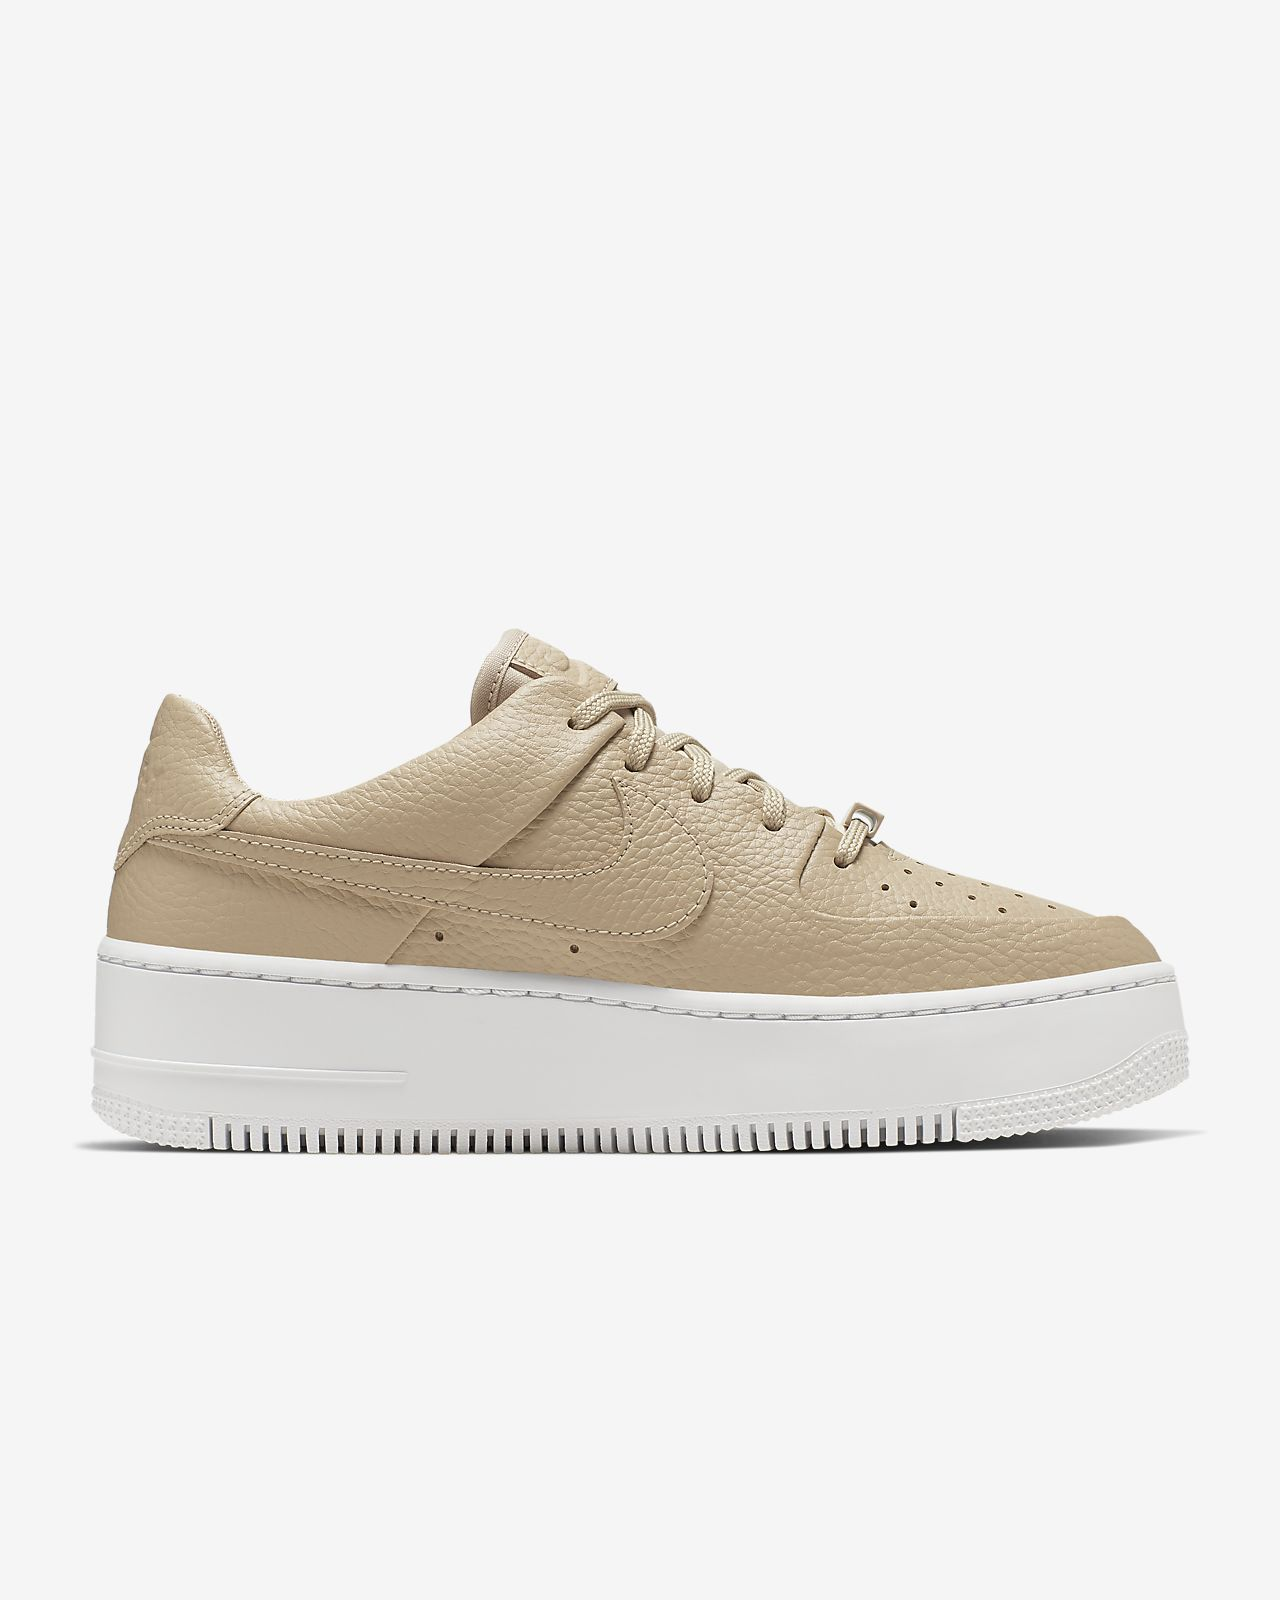 buy online 2f50a 9daf3 Nike Air Force 1 Sage Low 2 Women's Shoe